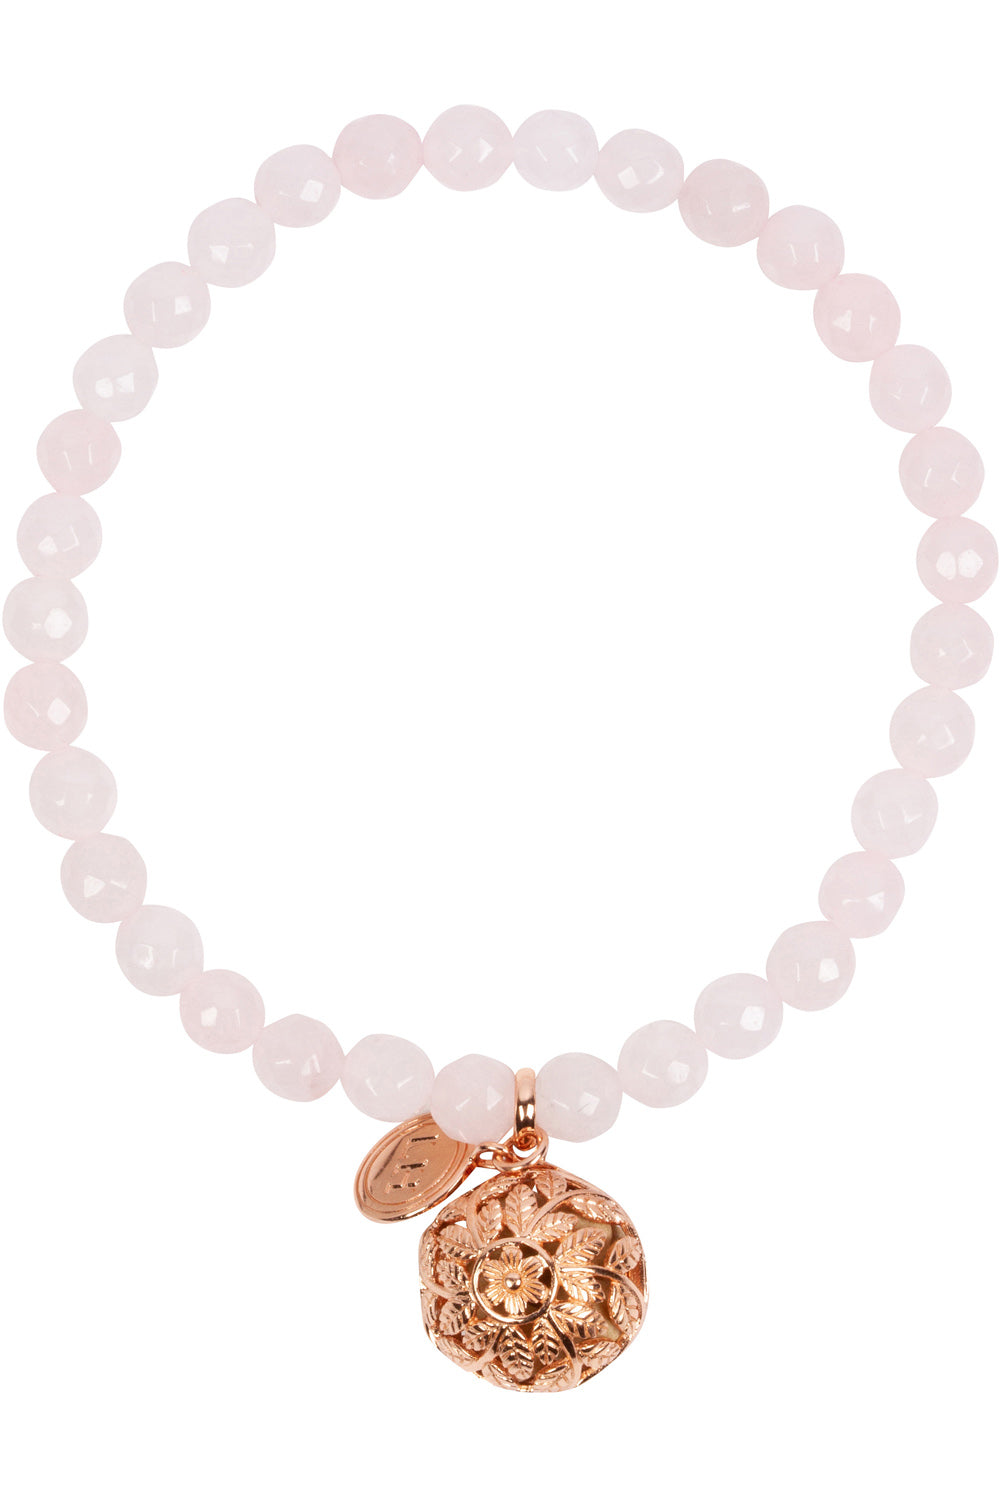 Rose Quartz Fragrance Bracelet with Flora Charm